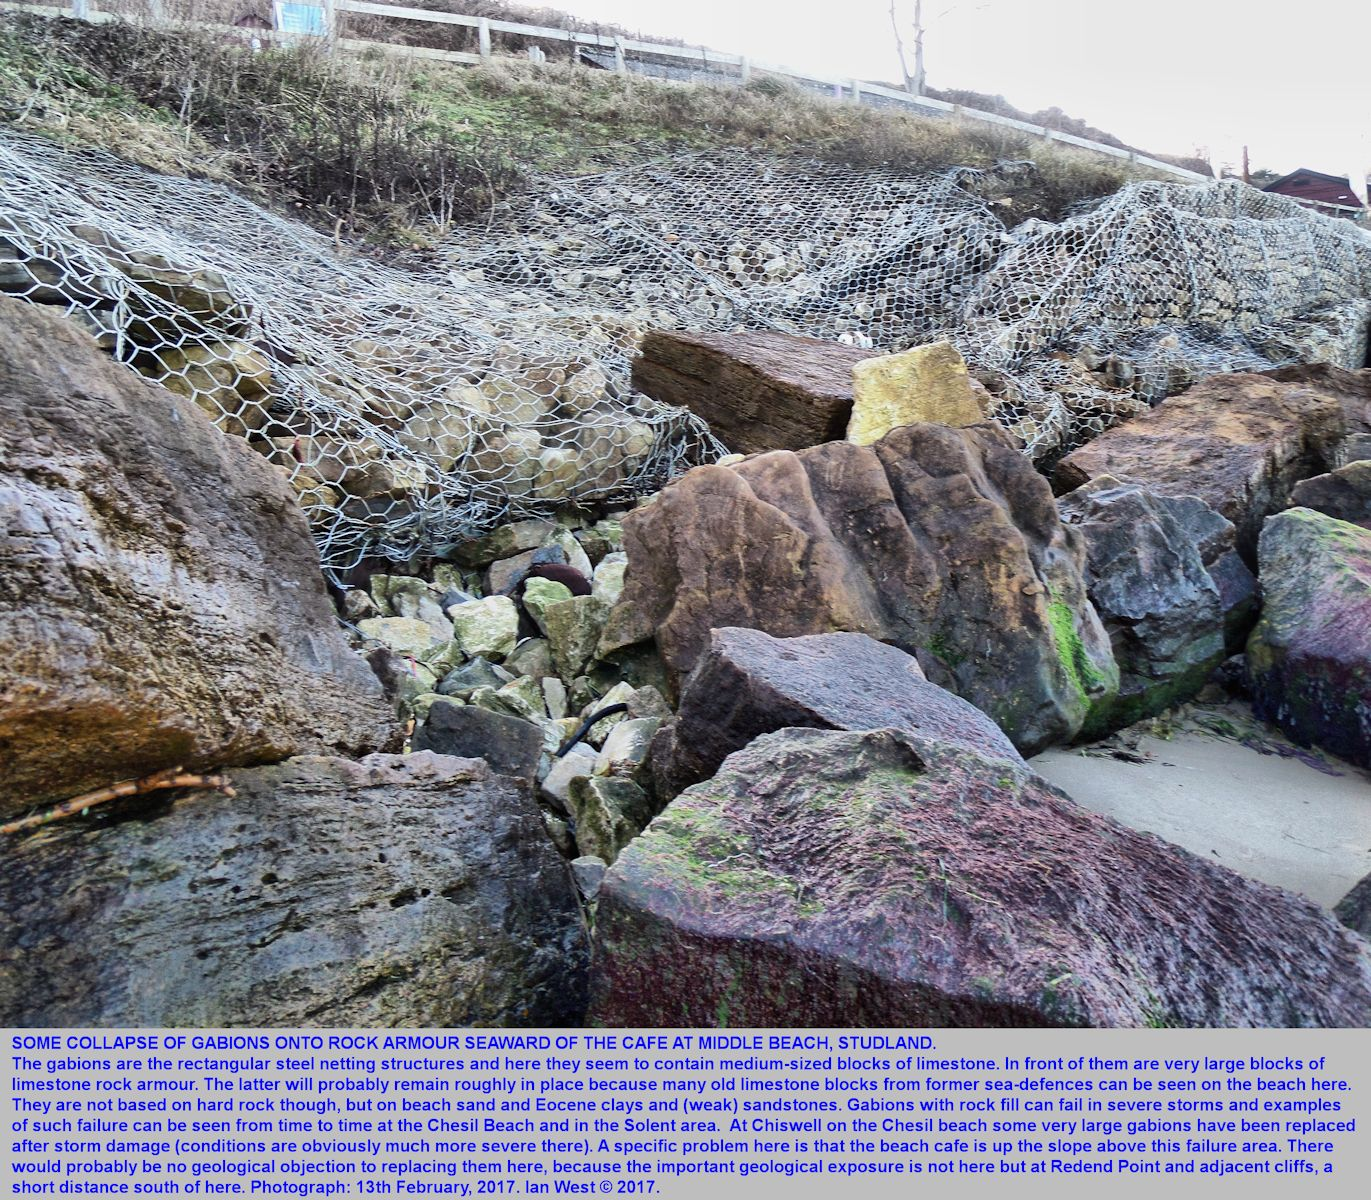 Failure of some gabions and release of limestone blocks, below the cafe, Middle Beach,  Studland, Dorset, 13th February 2017